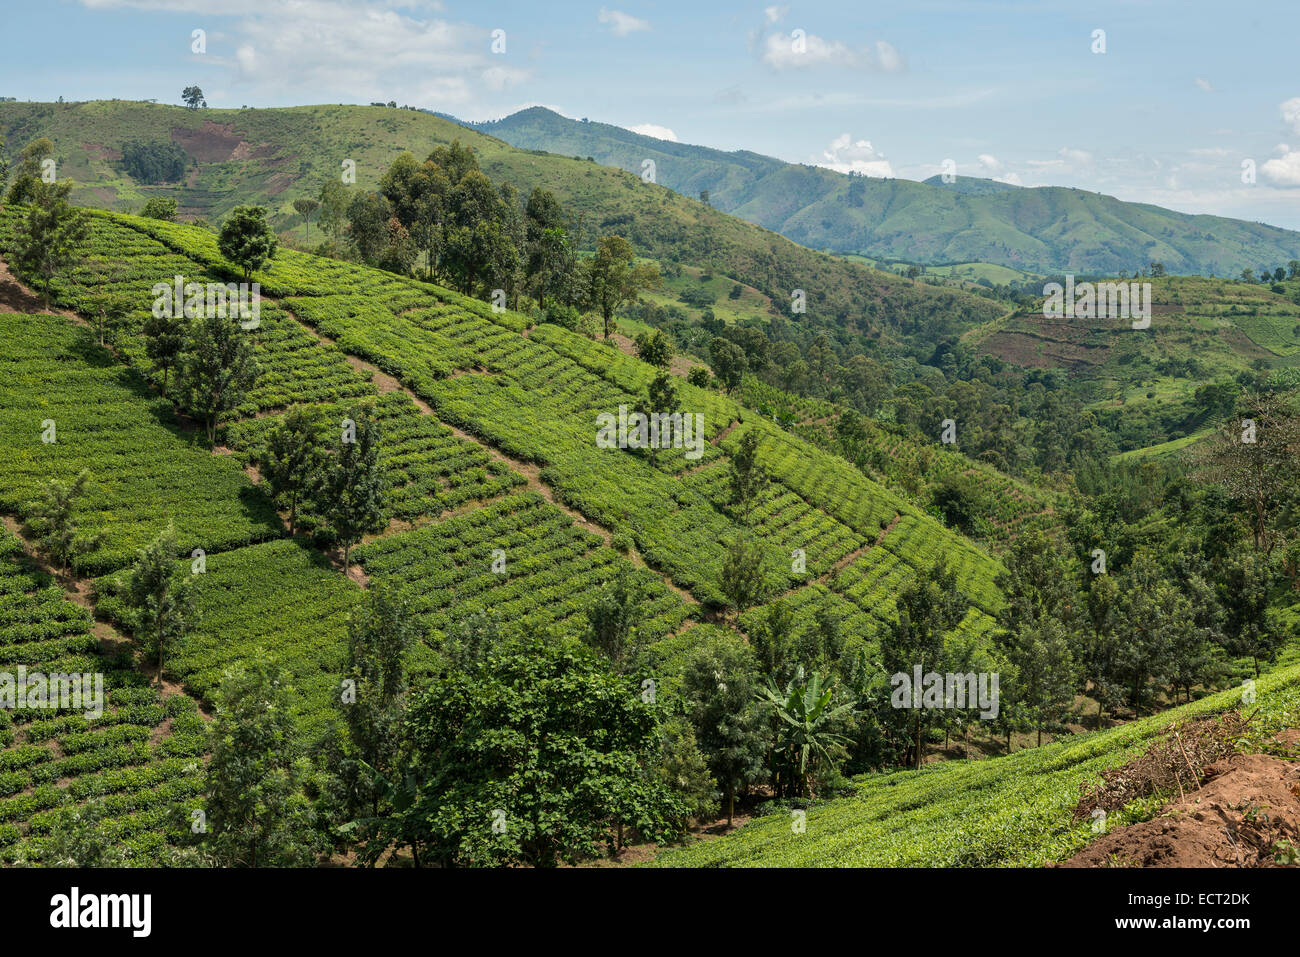 Cultivated fields on a slope, Uganda - Stock Image